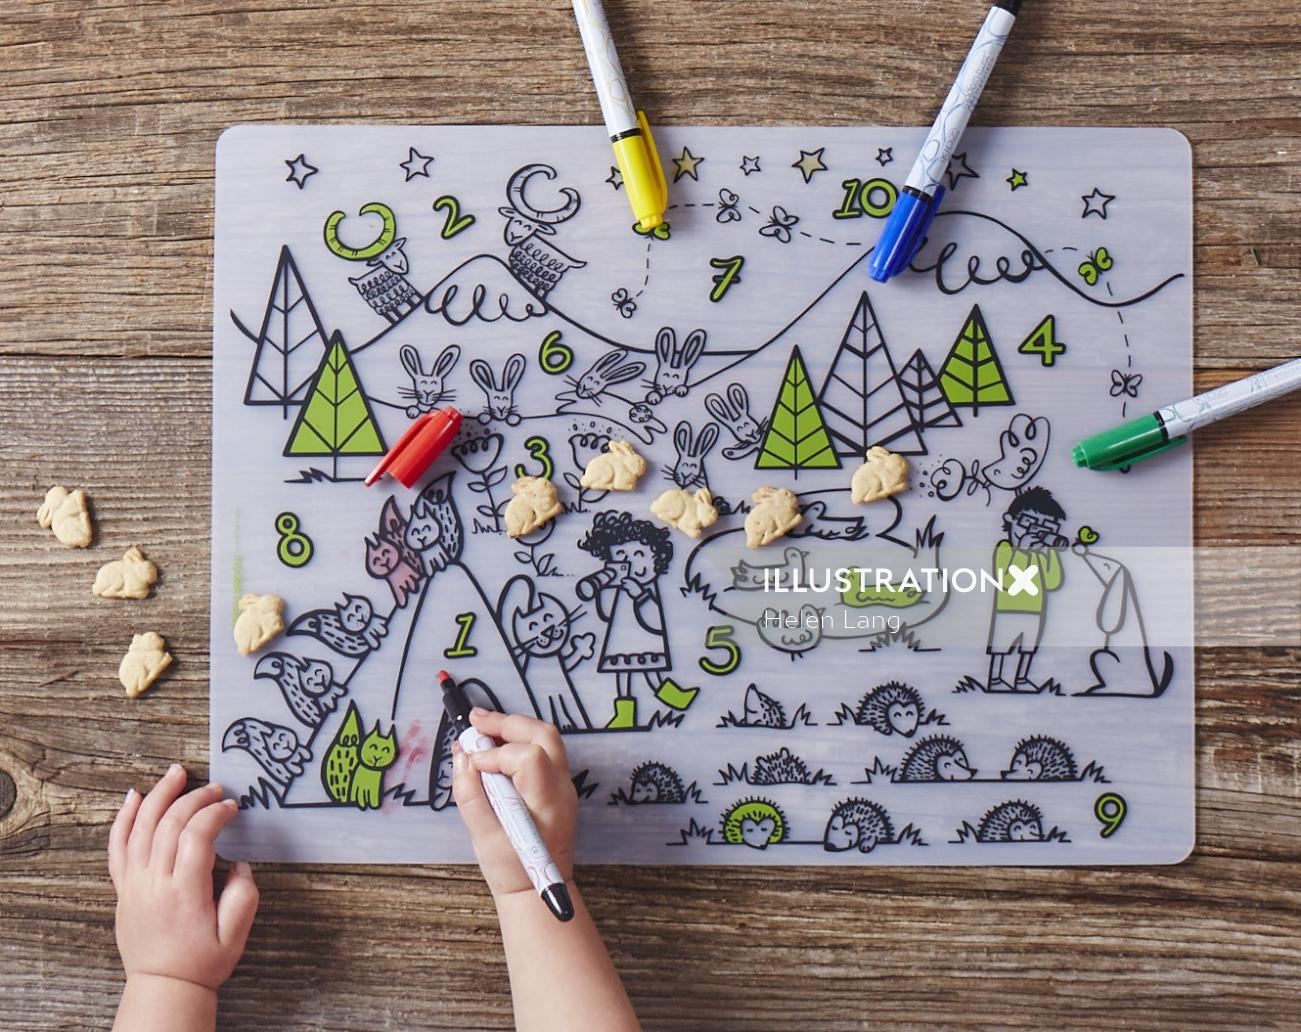 Live drawing illustration of nature